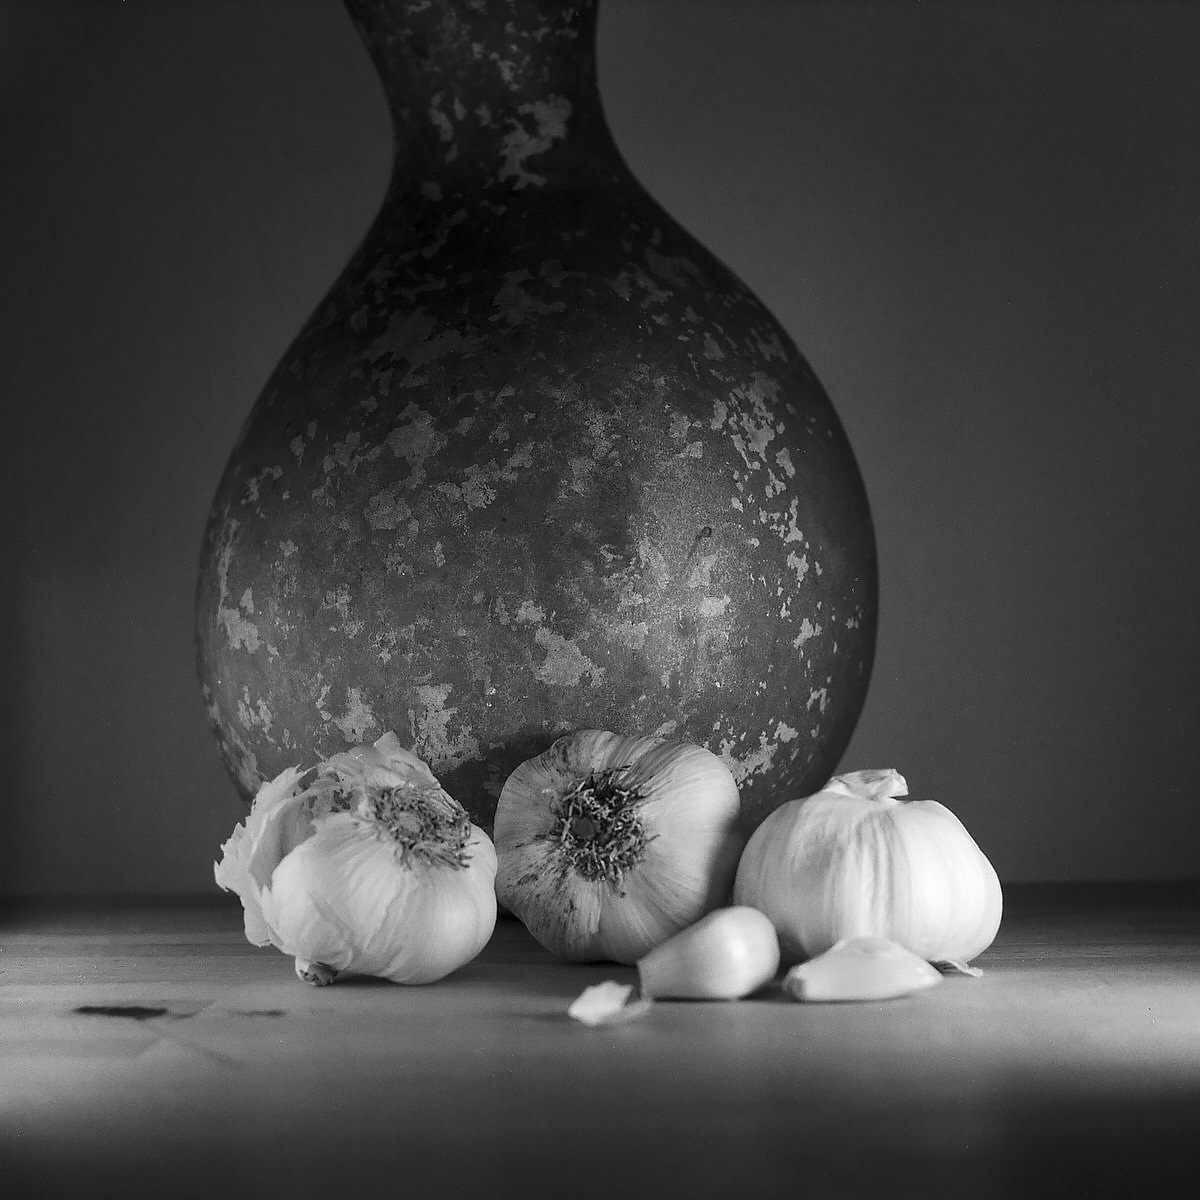 Garlic - Still Life Photography | Yashica MAT124 with Fomapan